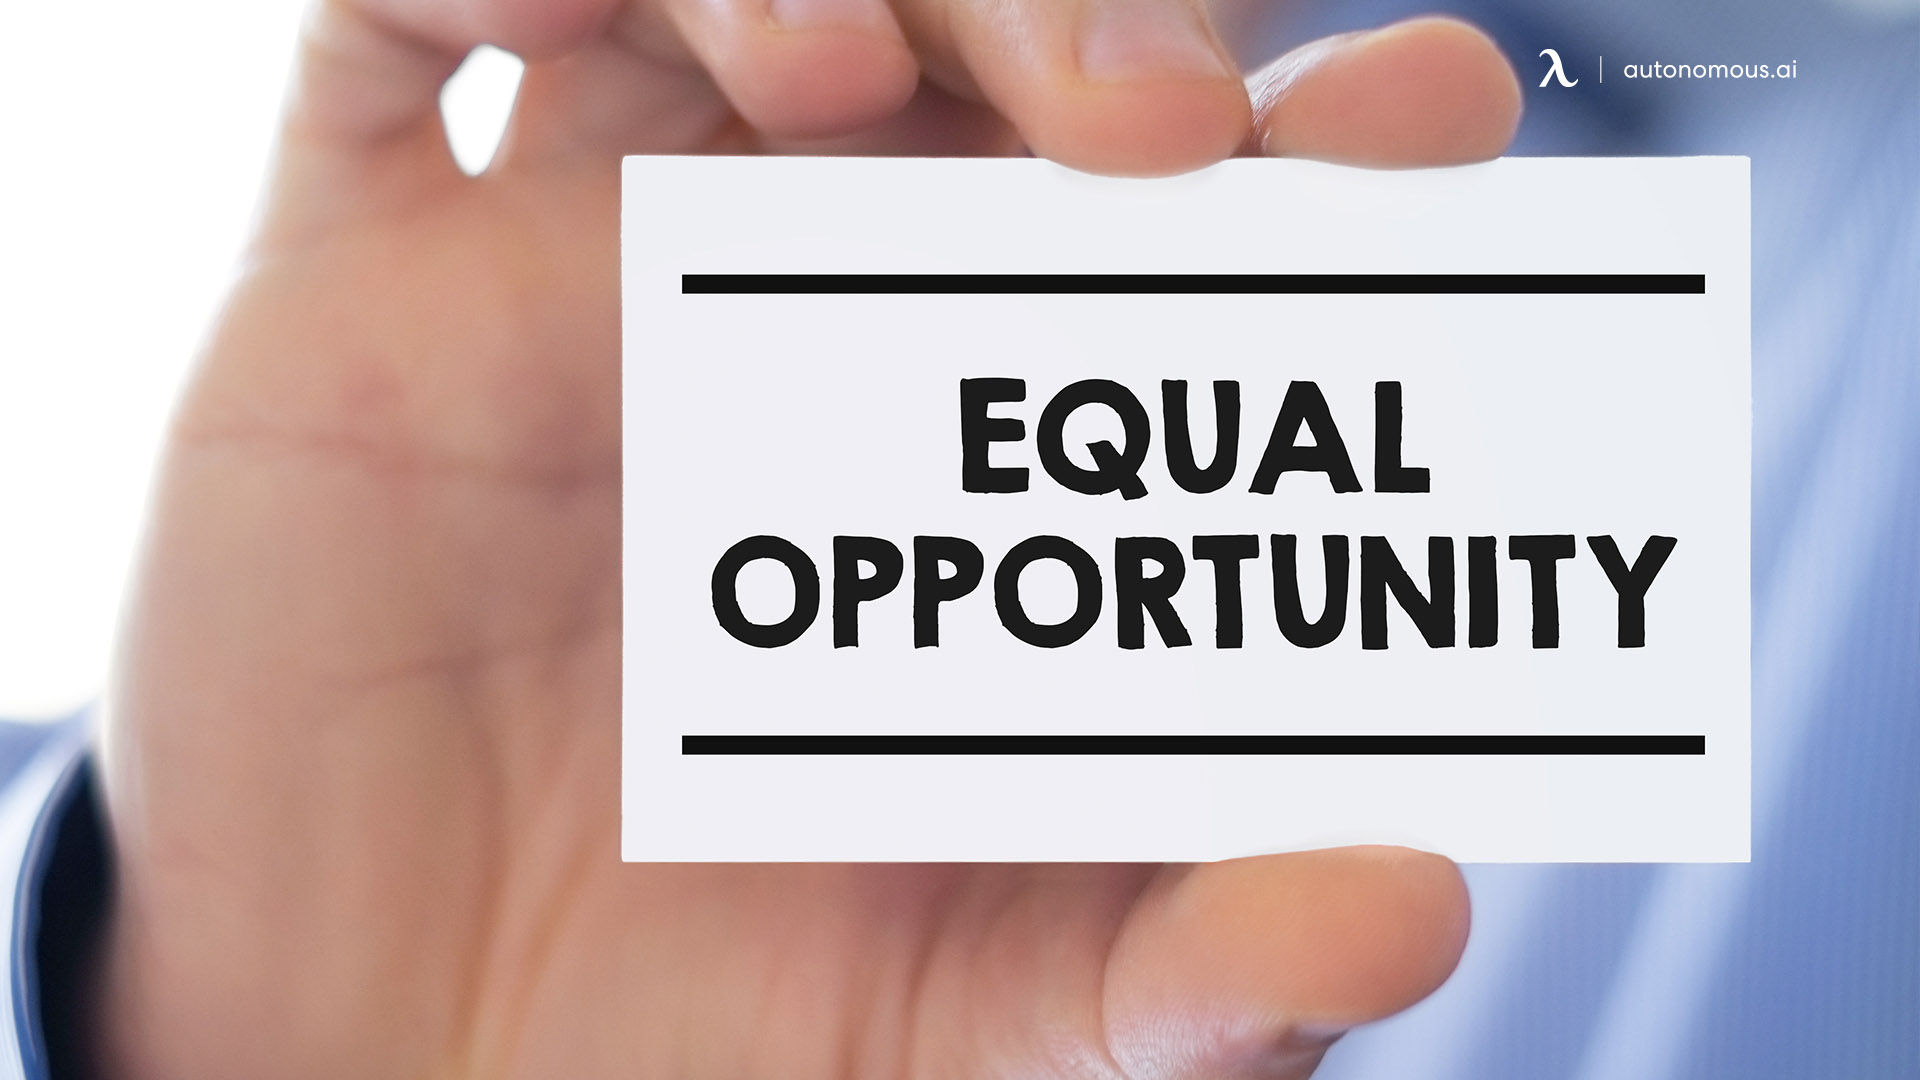 Ensure Everyone Has Equal Opportunities